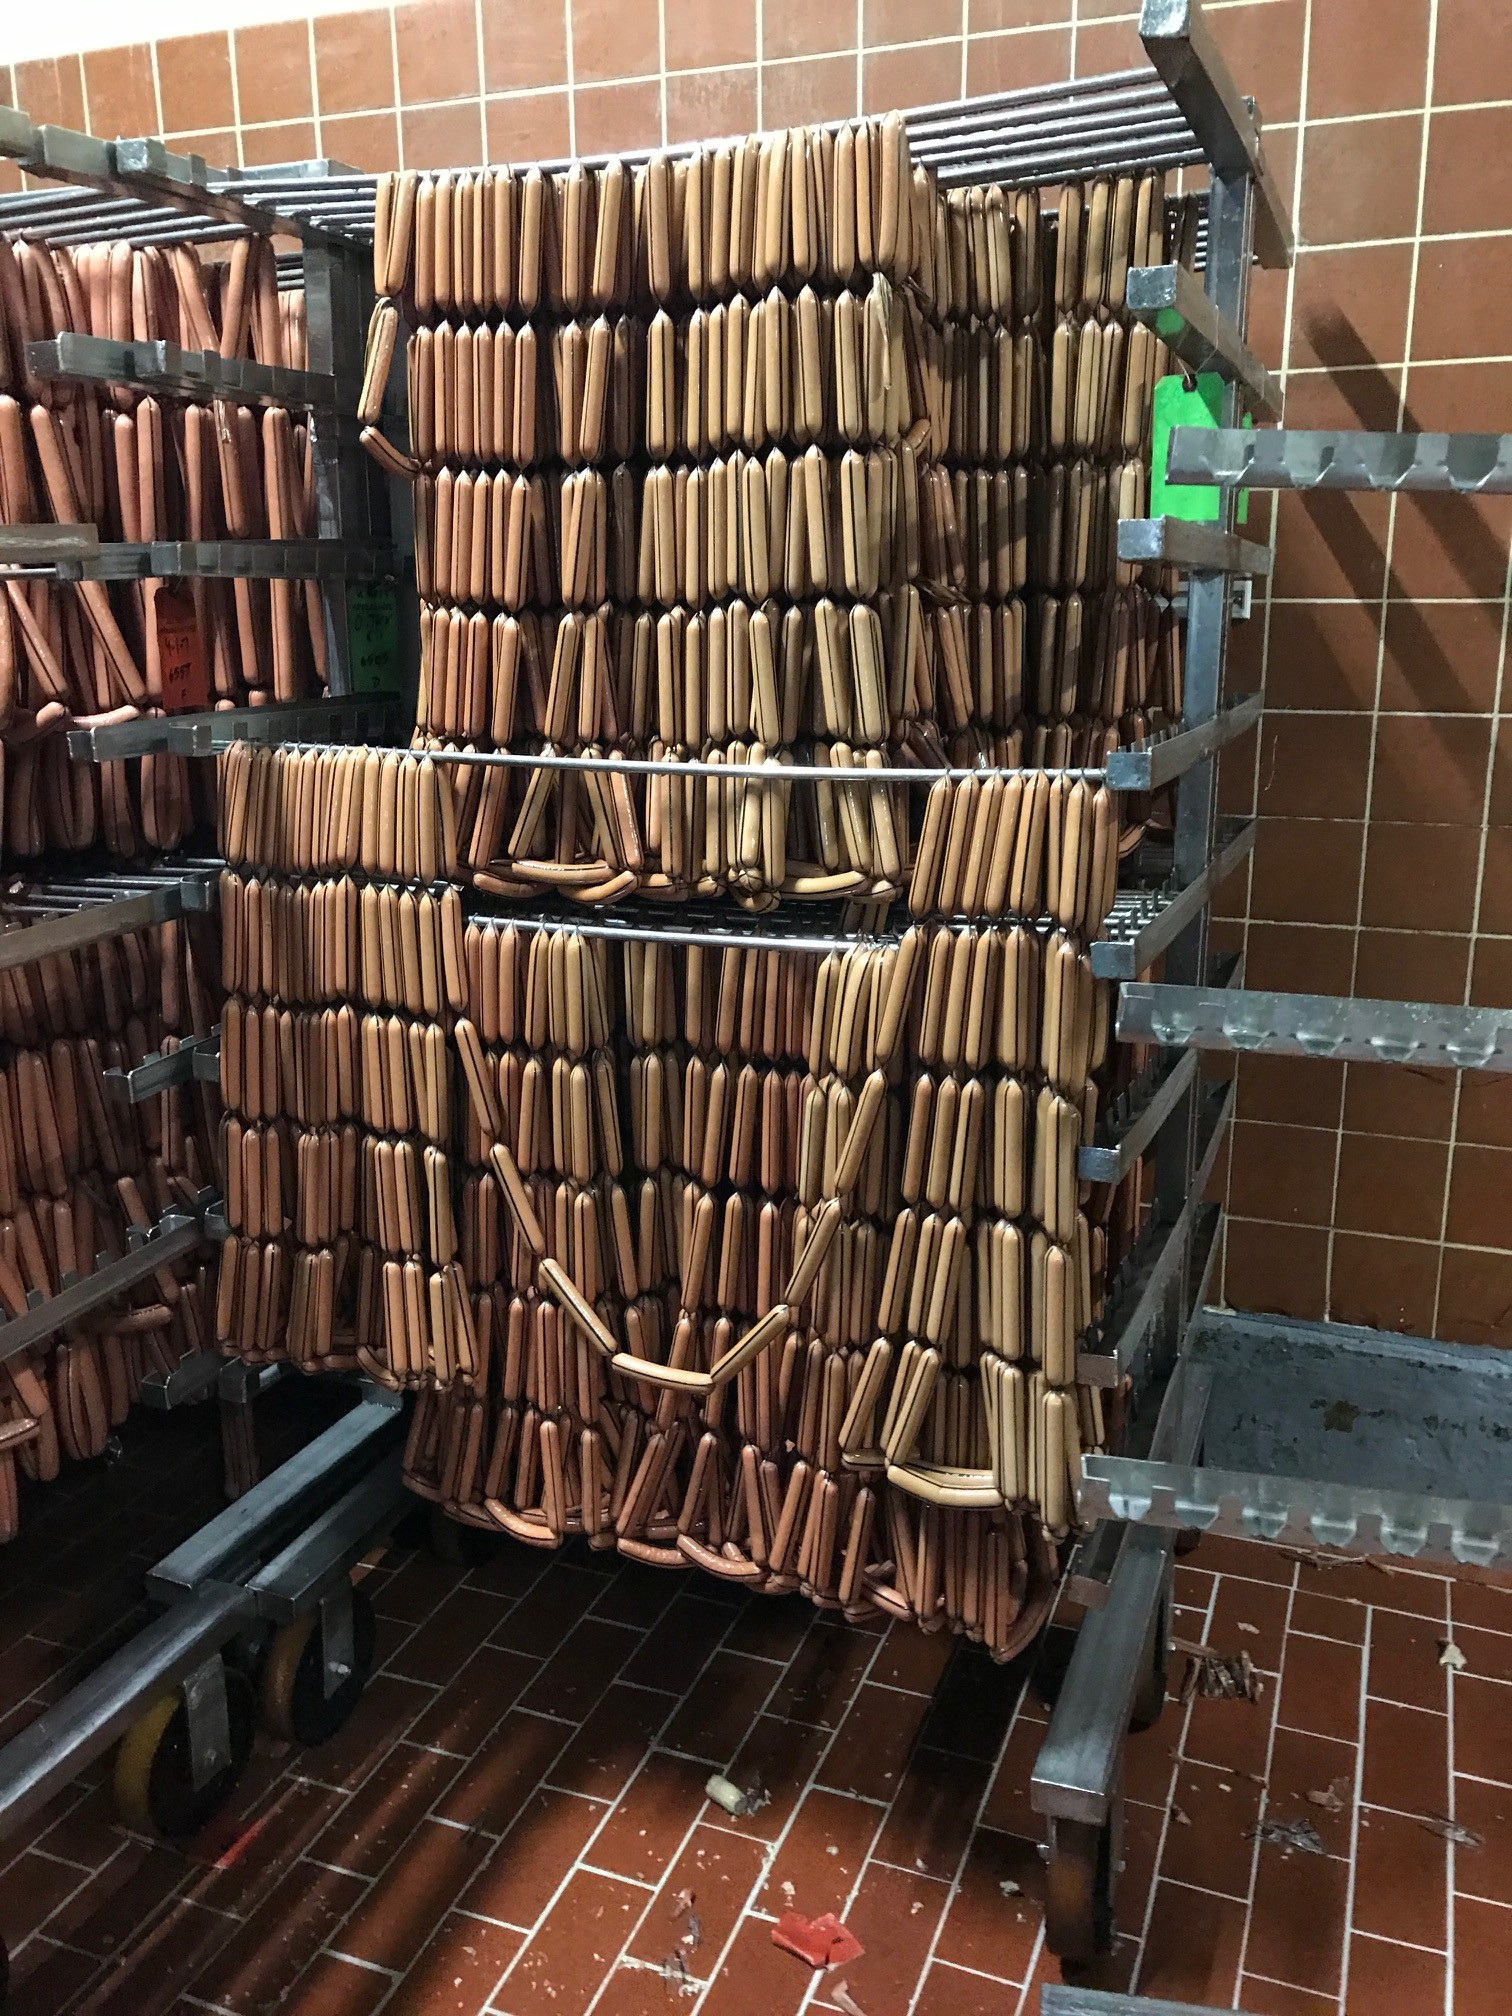 A very small fraction of Dietz's daily hot dog production.